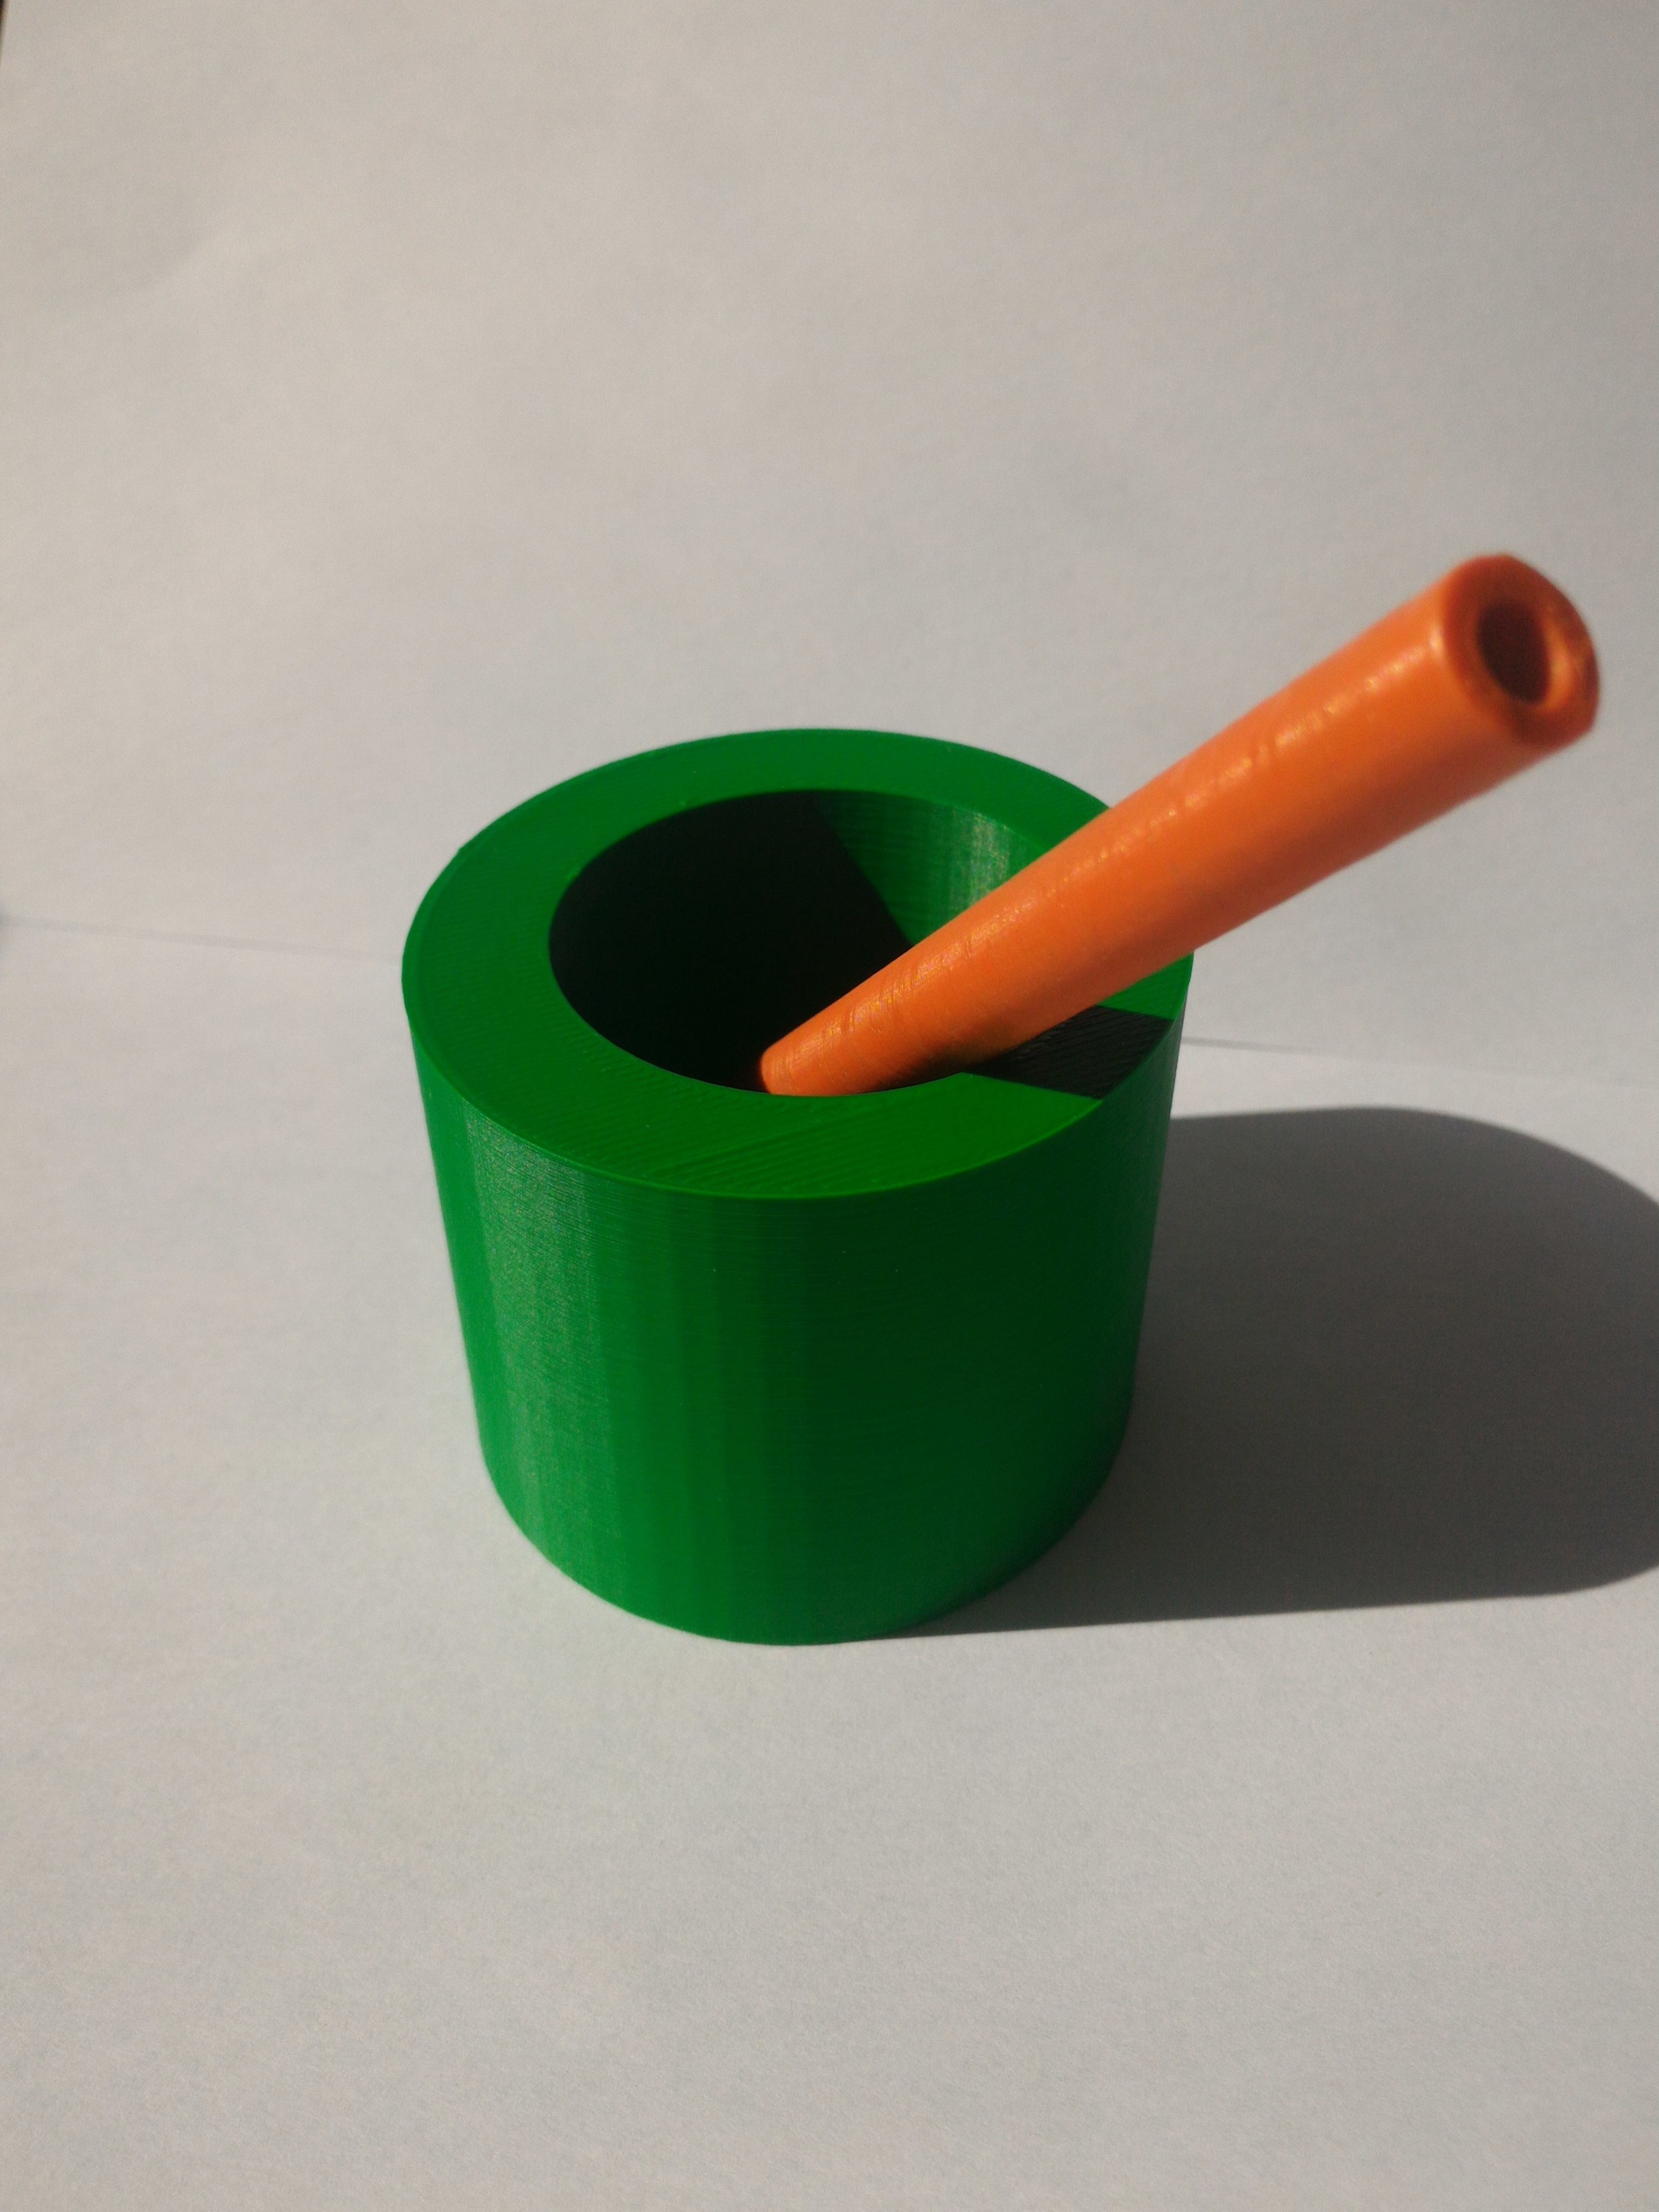 cup and straw image